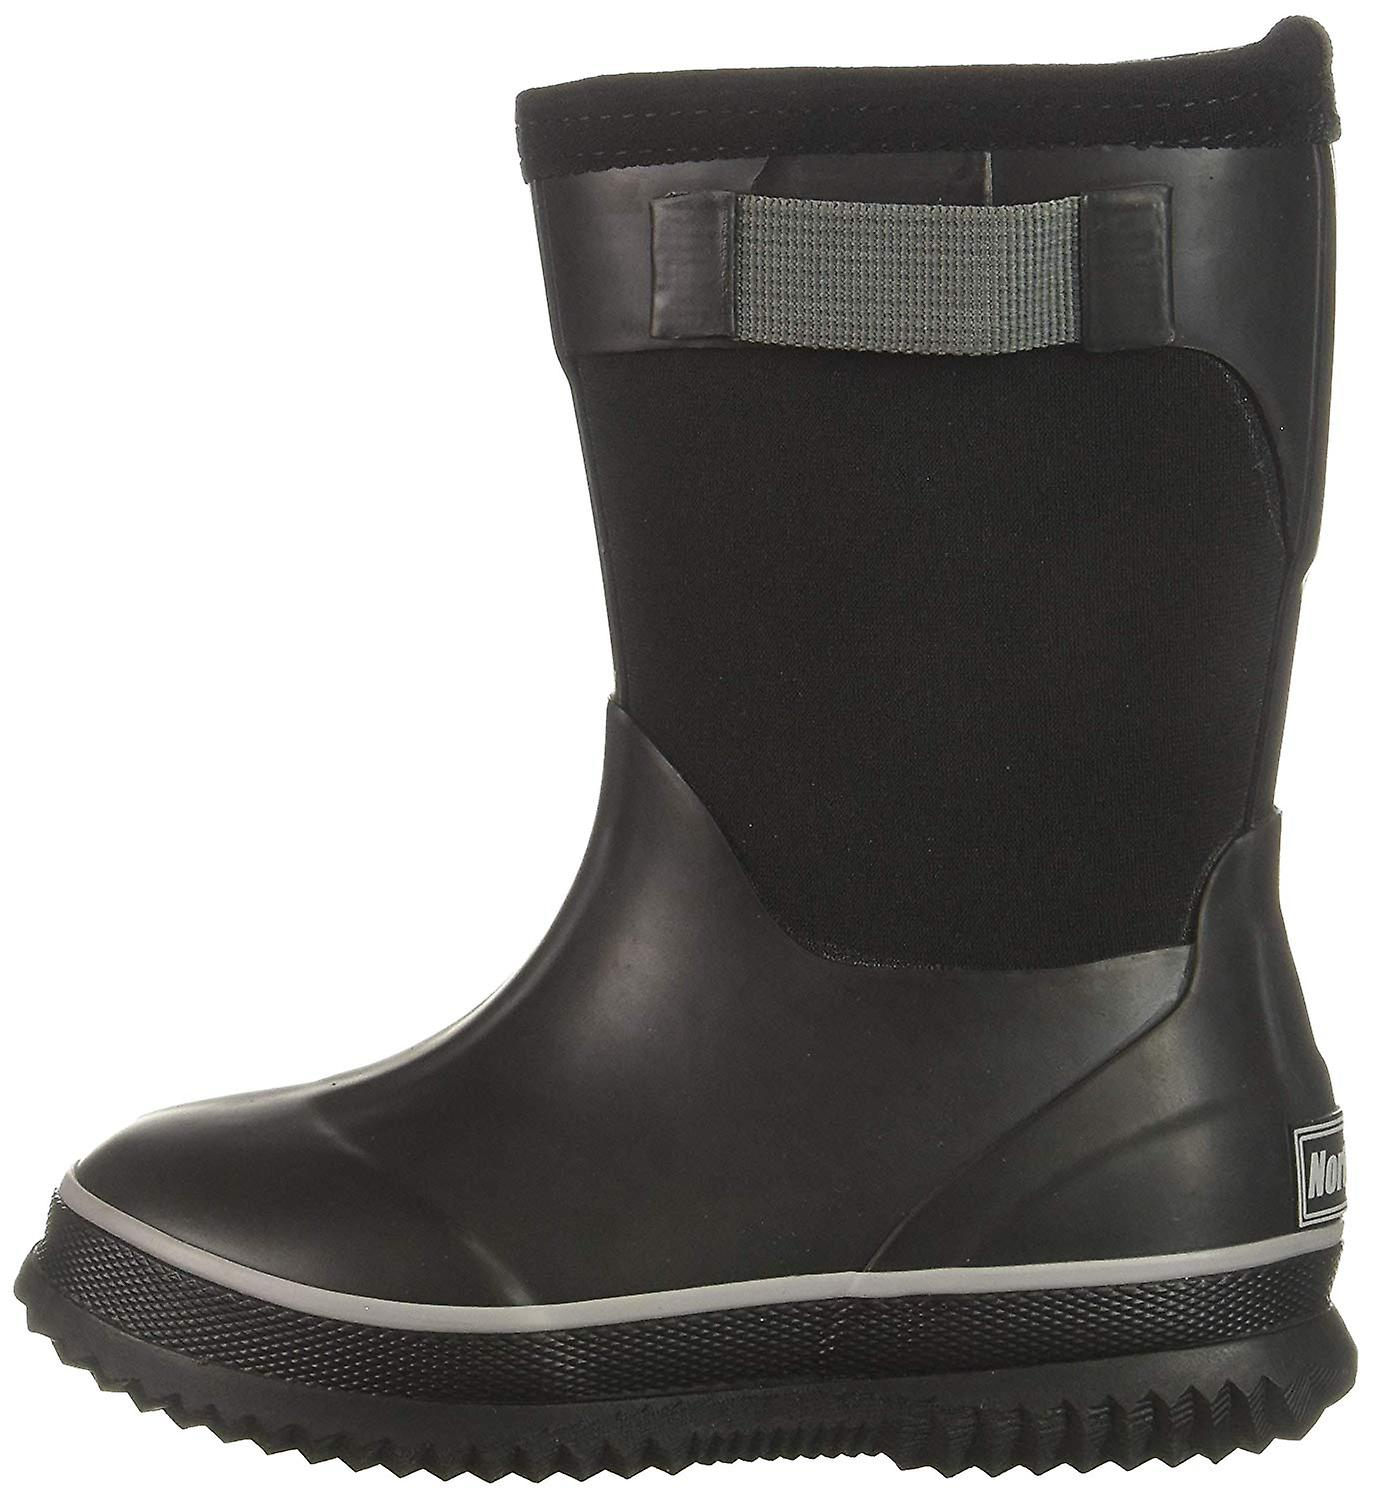 Northside Neo Rain Boot Ankle-high